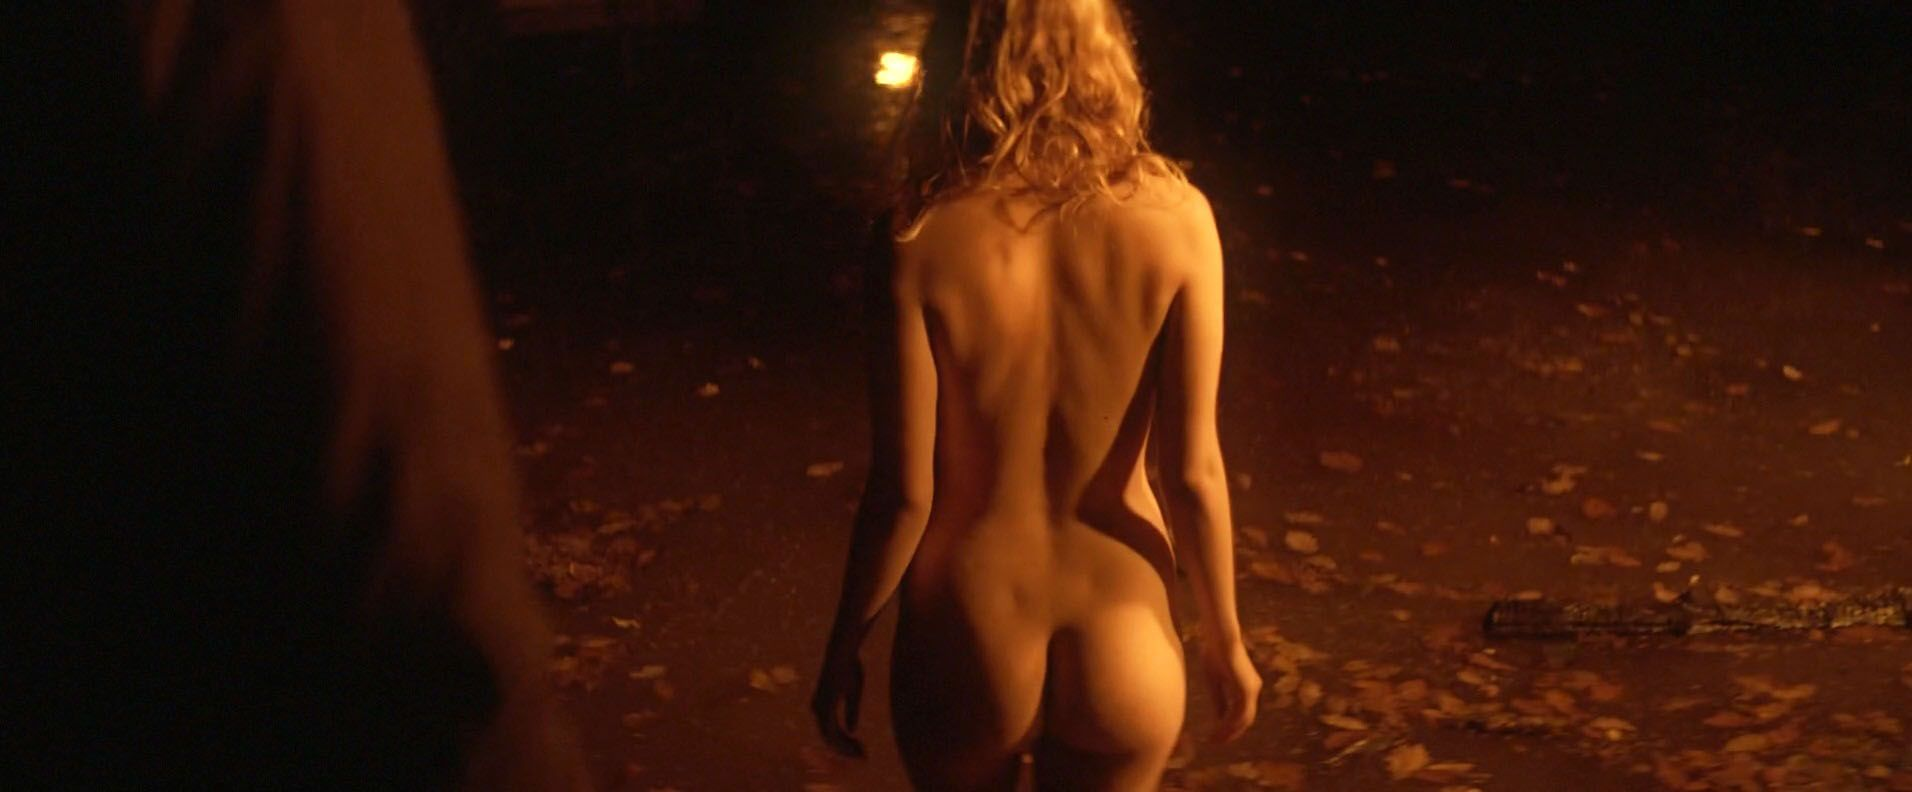 Hannah-Murray-Elinor-Crawley-Nude-3